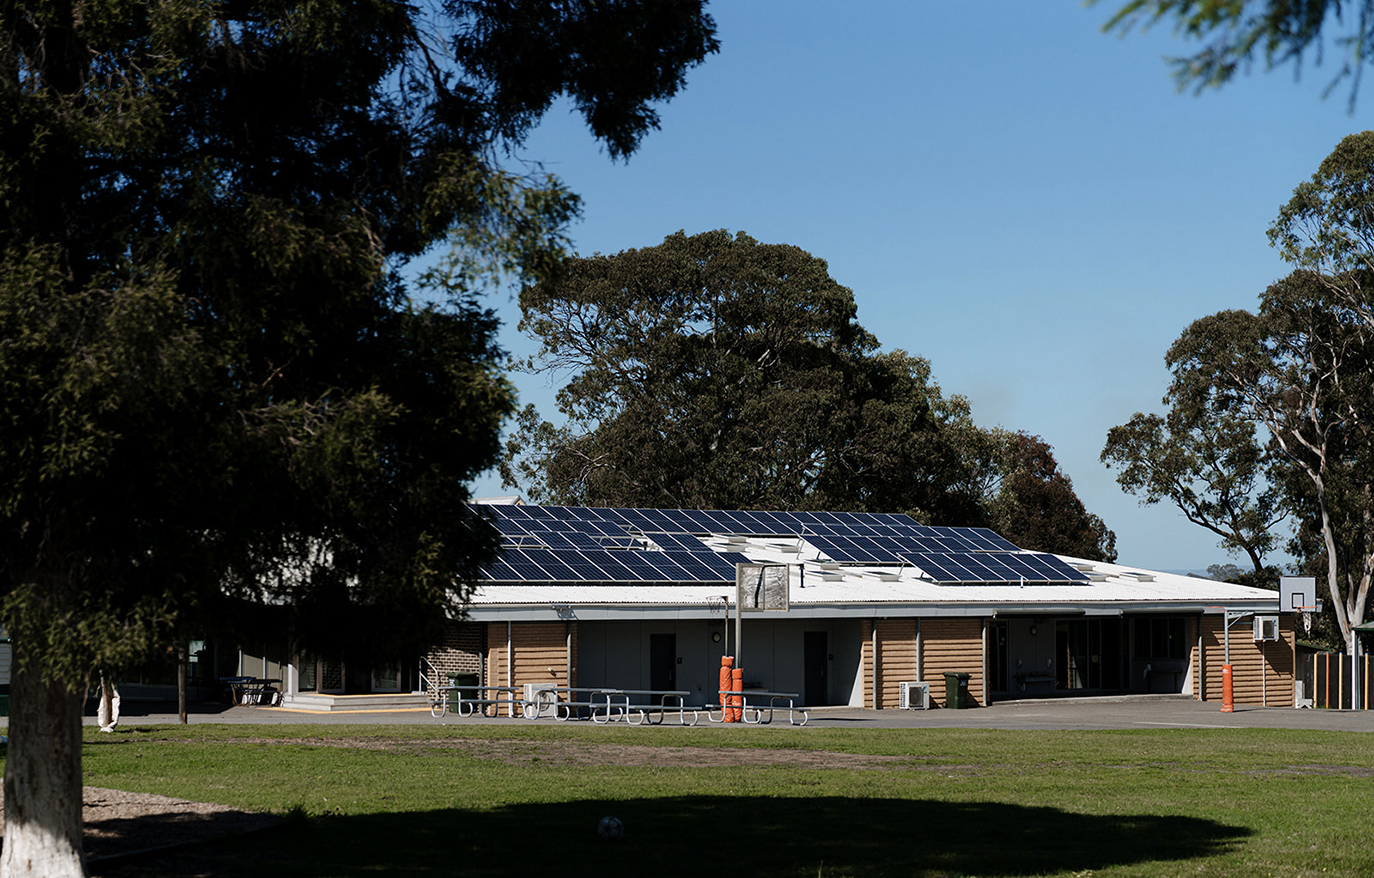 The Heyfield community is very proactive with their PV installations.